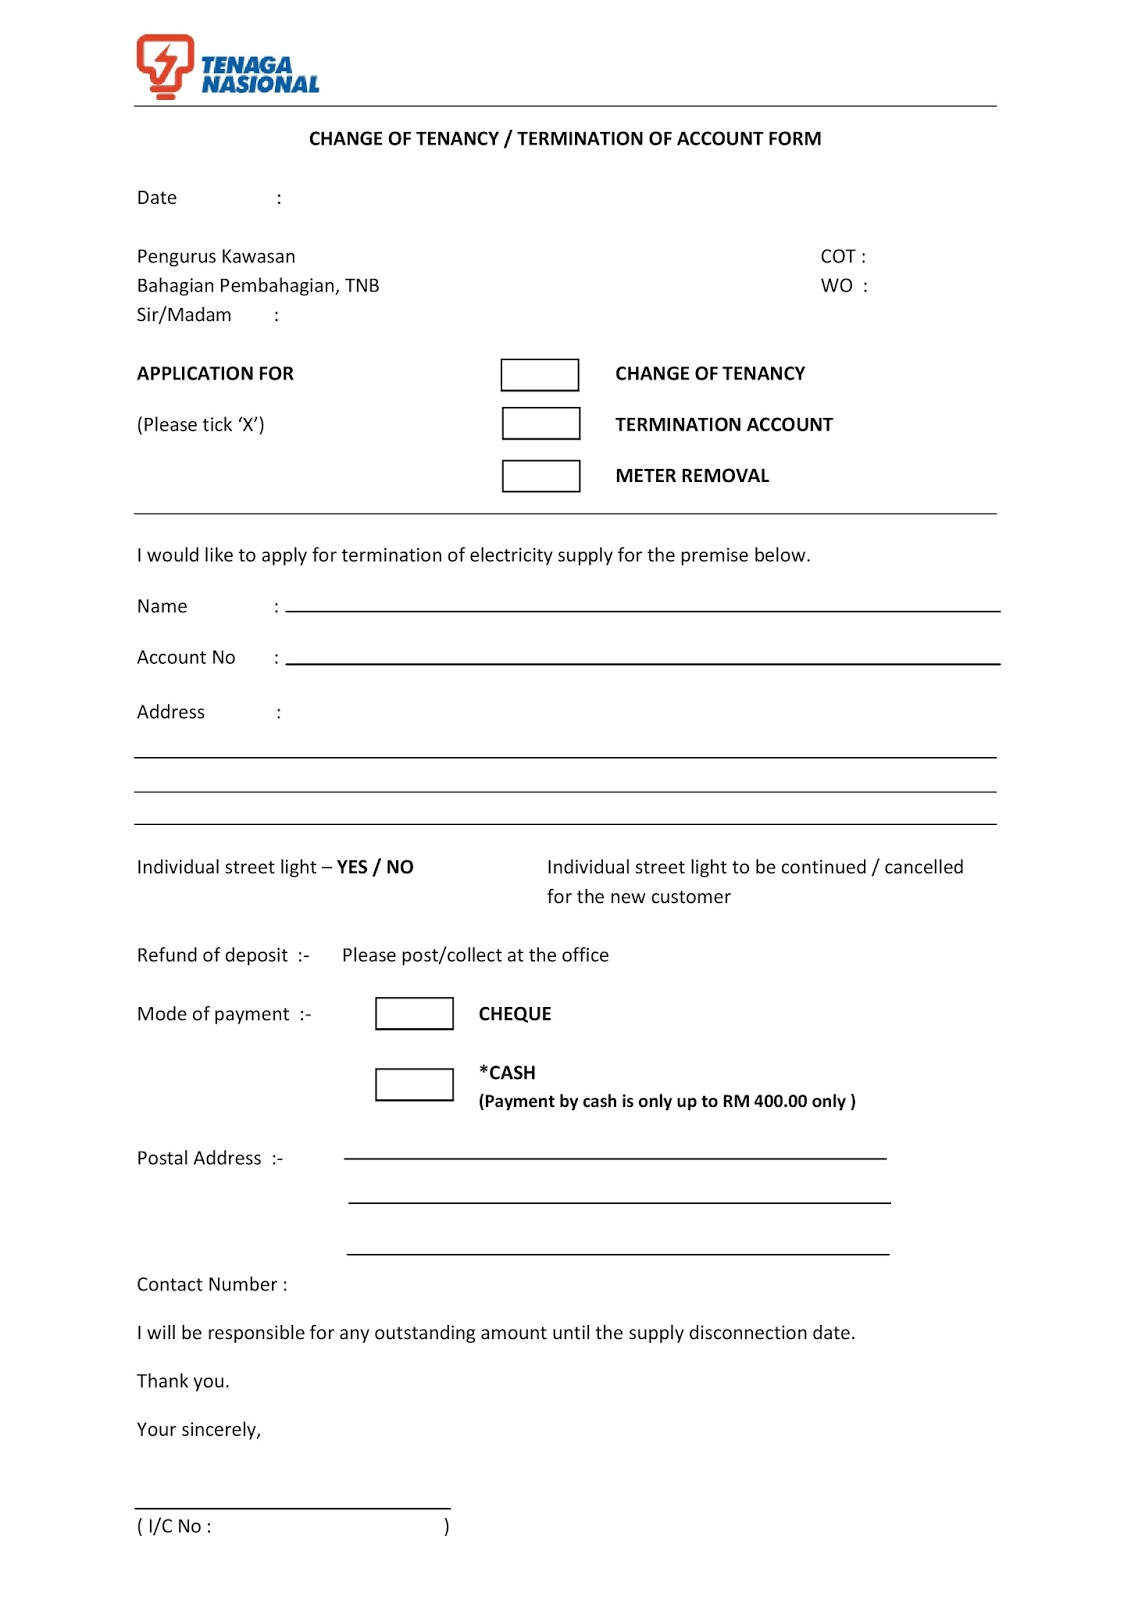 life is beautiful change of ownership tnb change of tenancy form domestic electricity supply application form